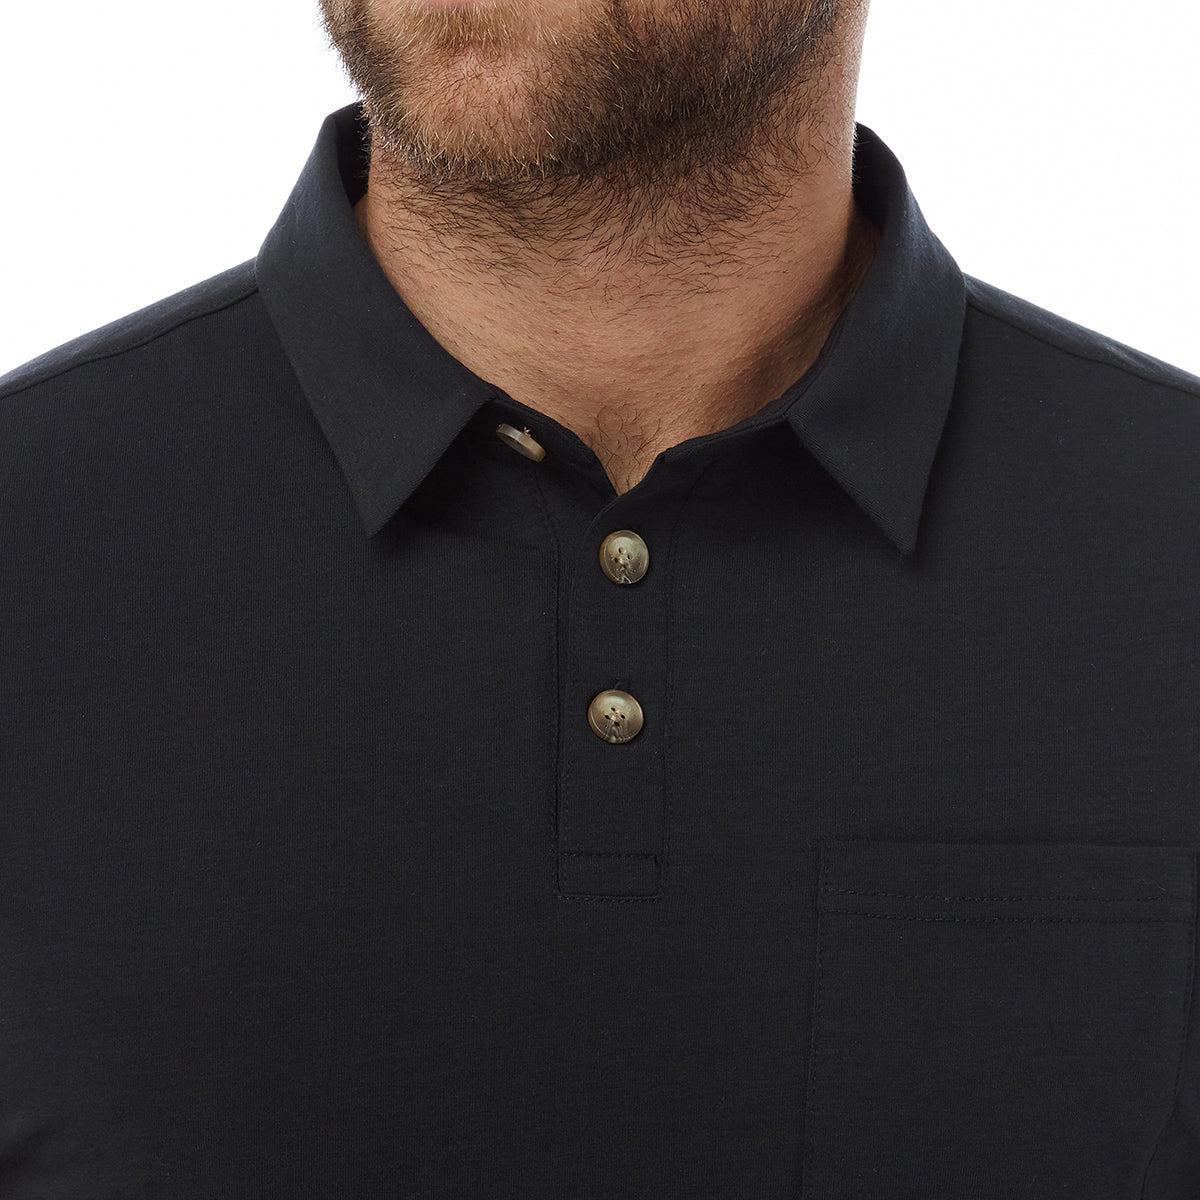 Buxton Mens Dri Release Wool Polo - Black image 4